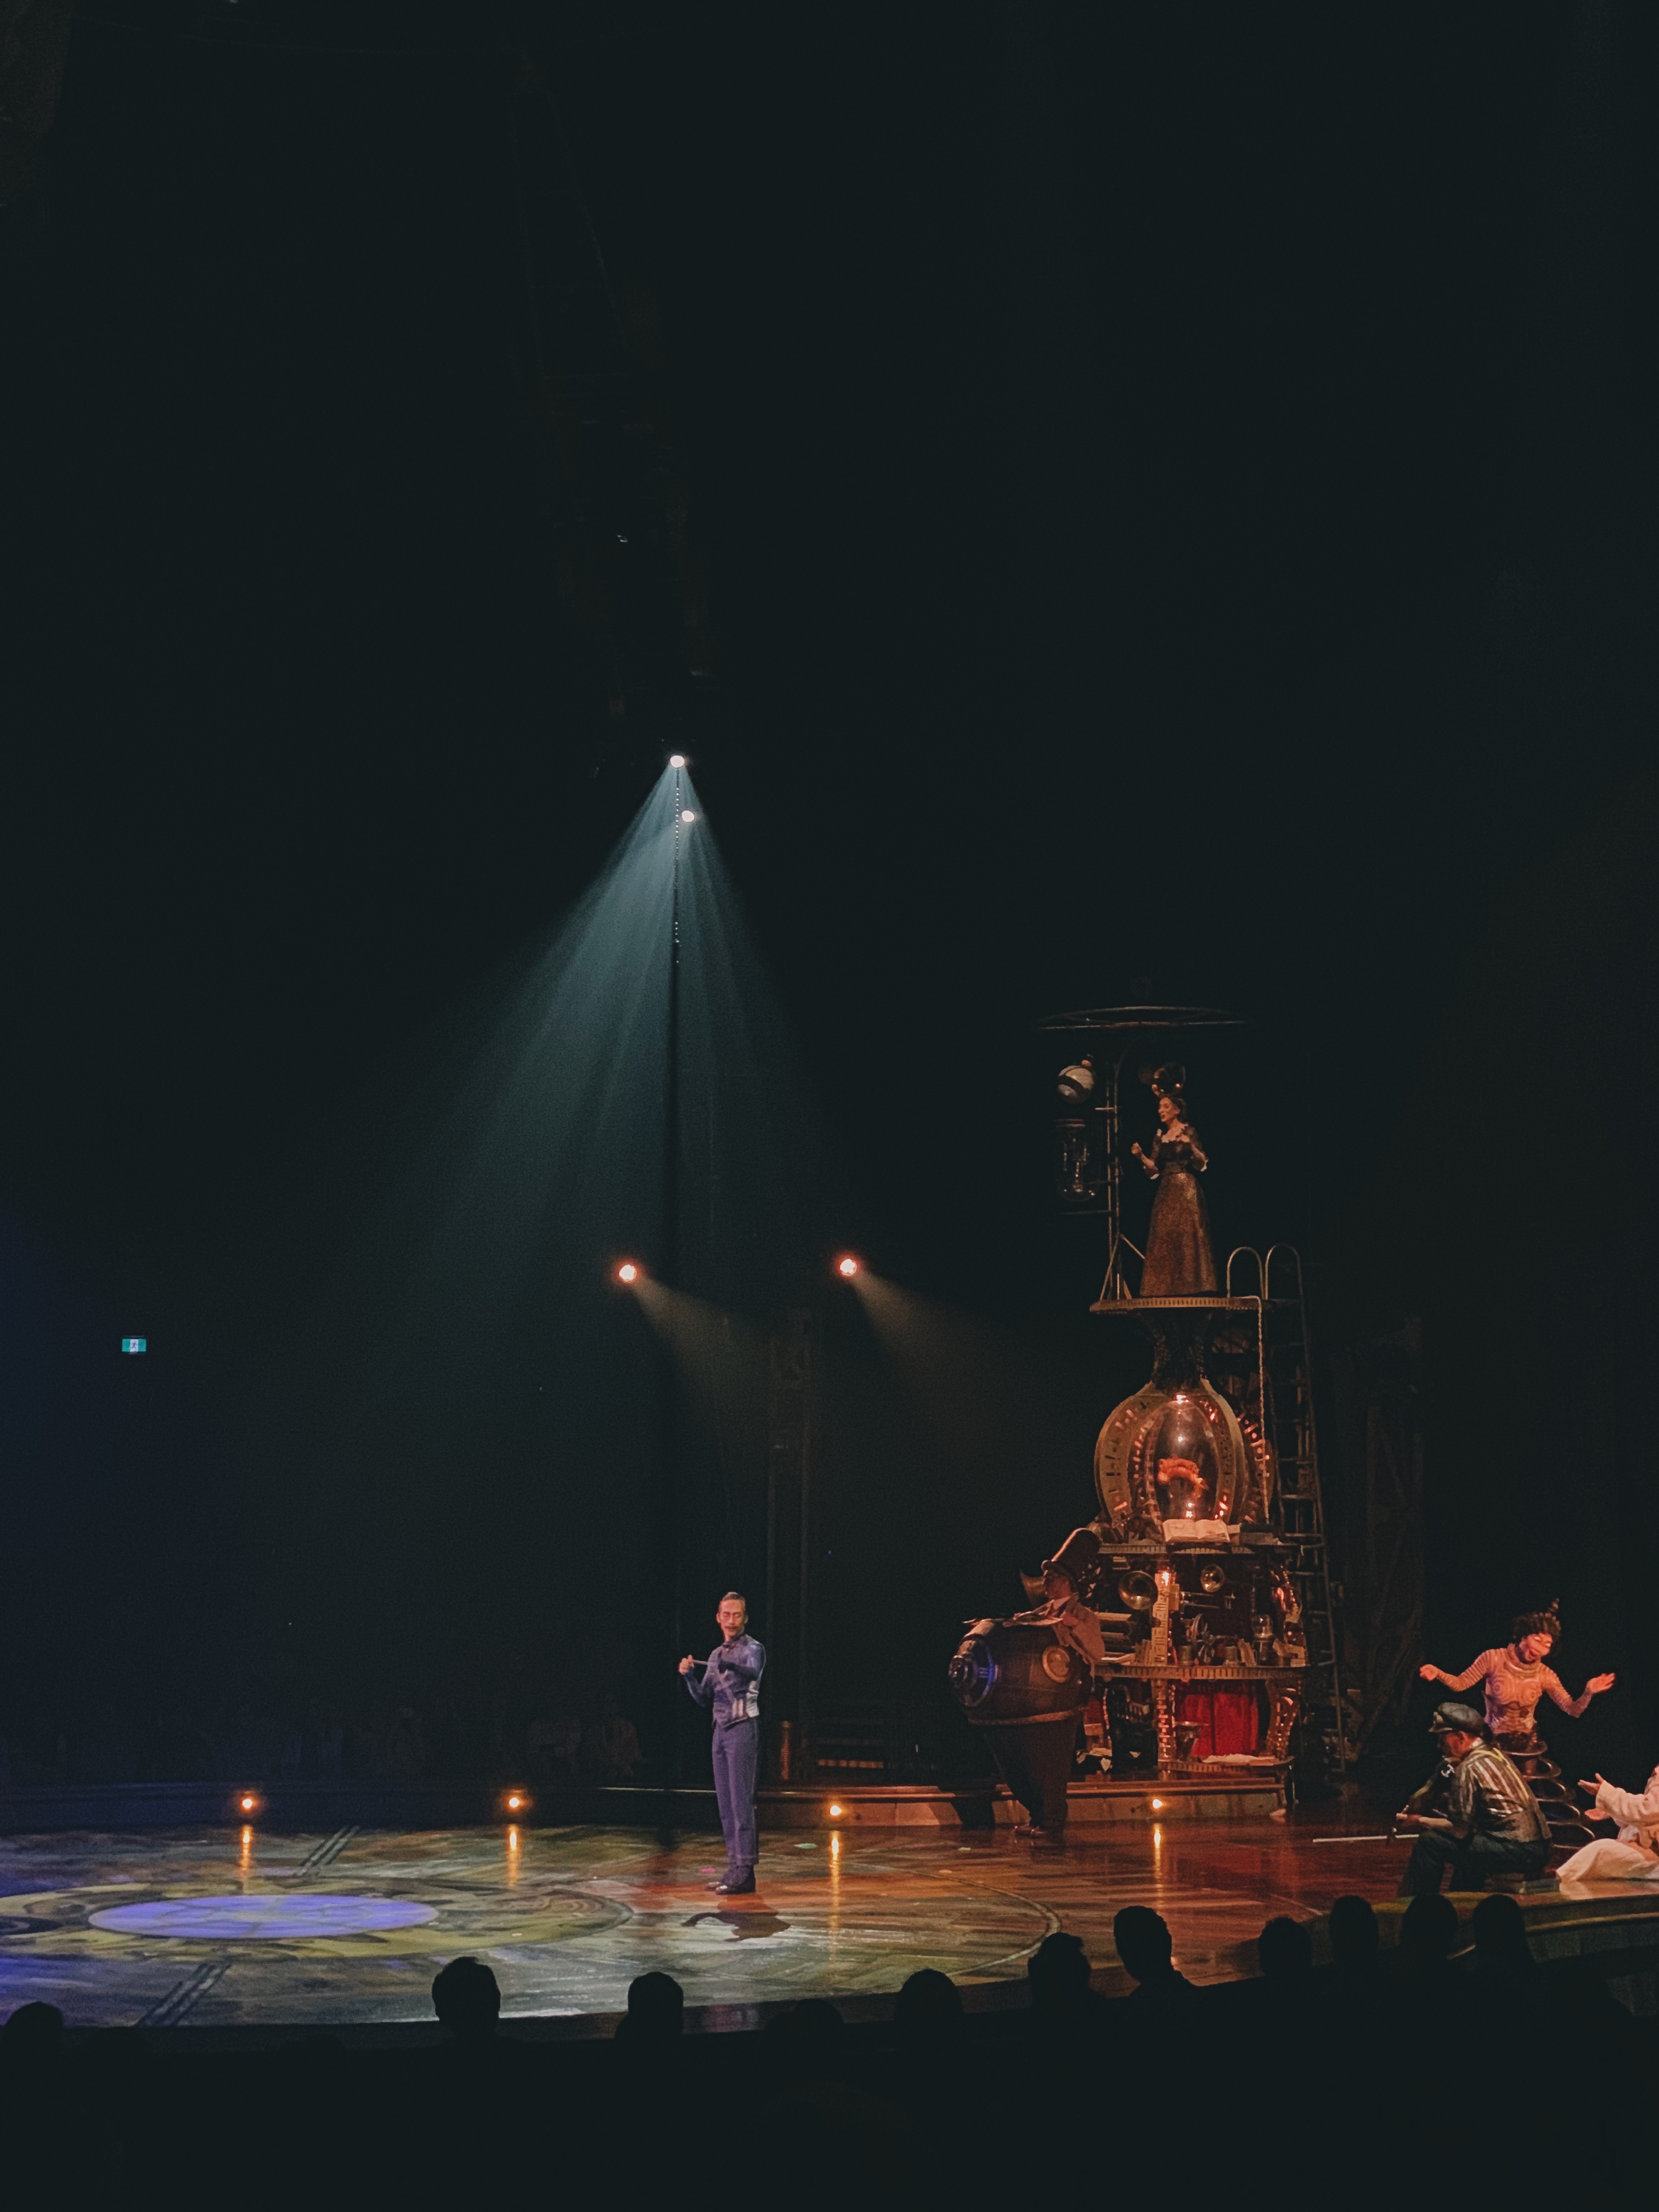 KURIOS was presented in the intimate setting of the signature Big Top. Photo: Connected to India